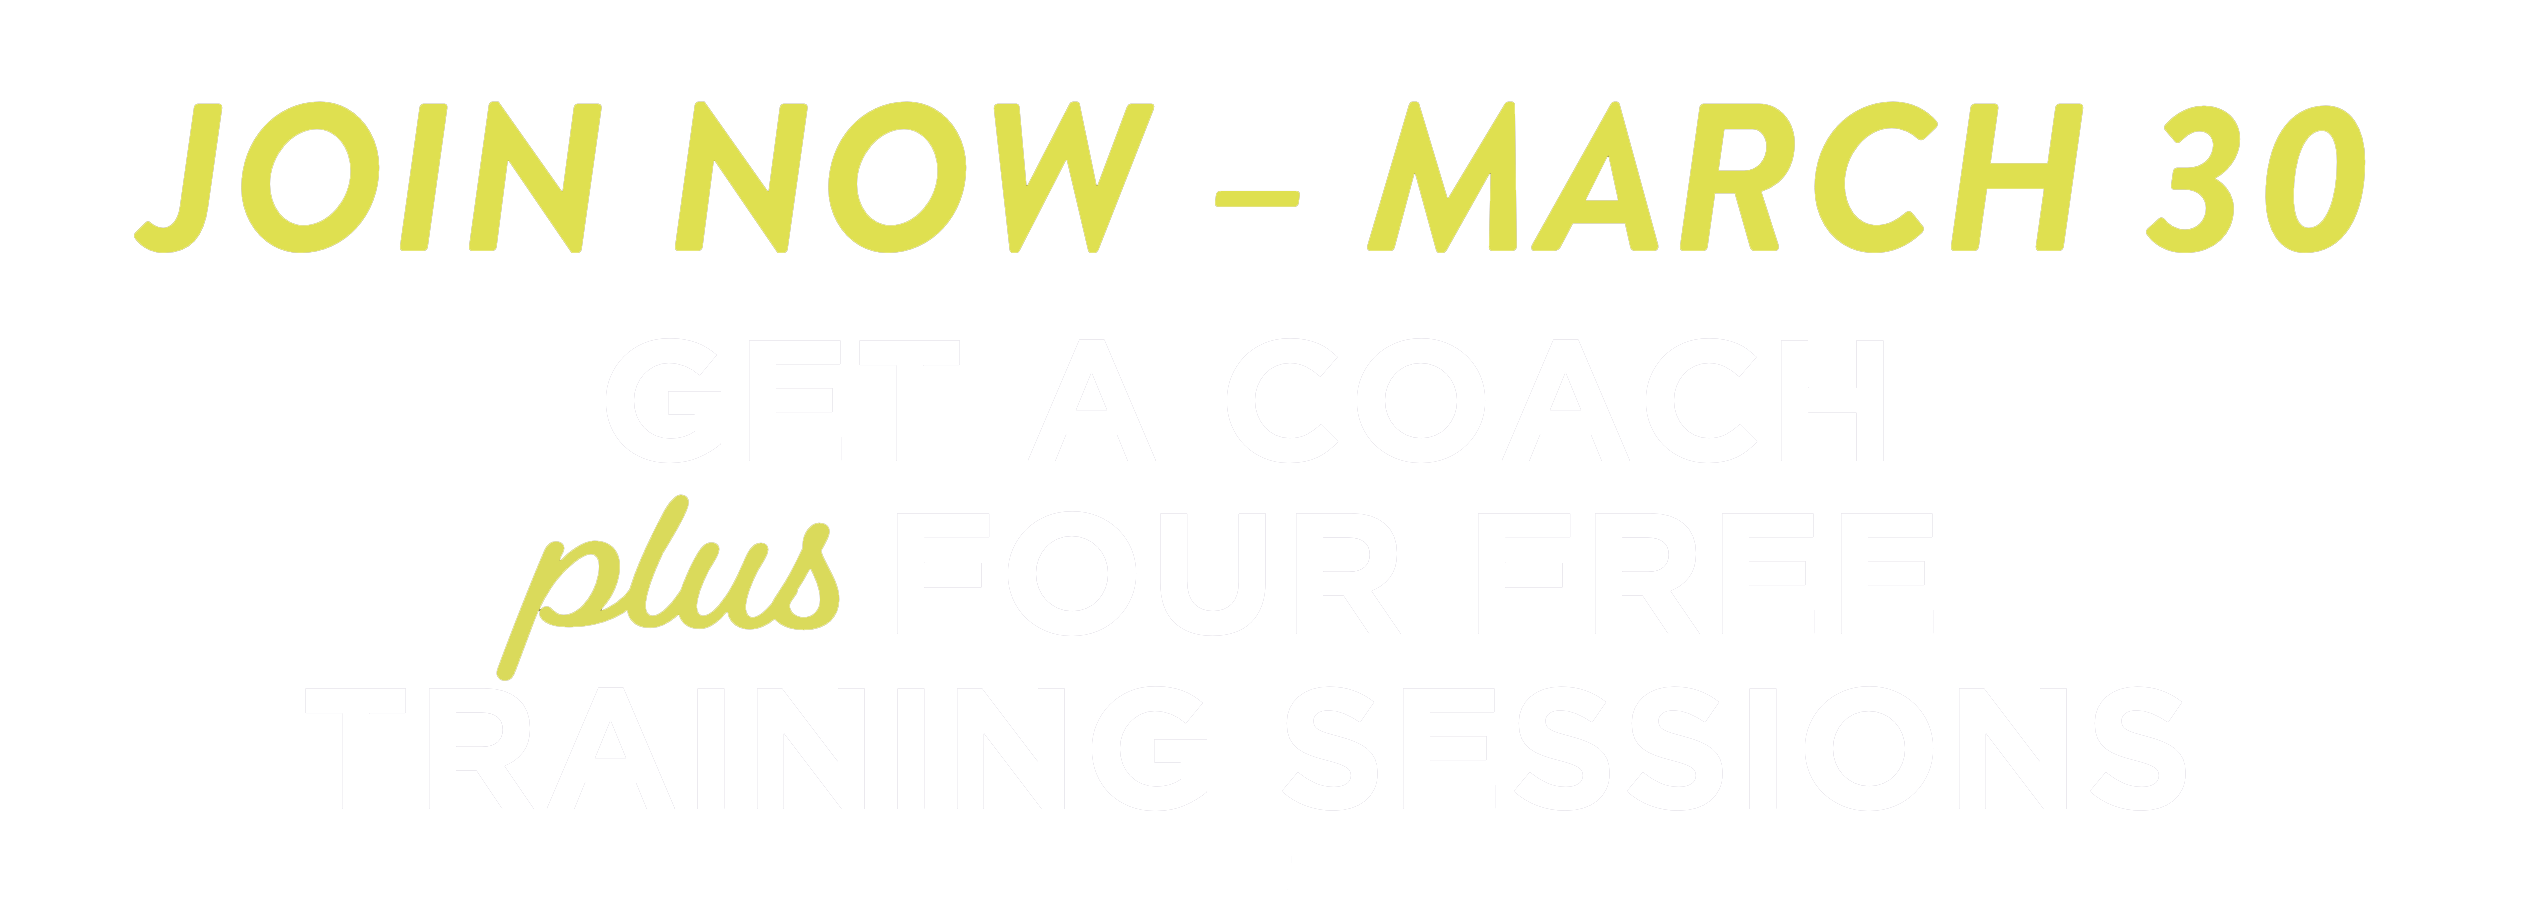 Join Now Through March 30th. Get a Coach Plus 4 Free Training Sessions